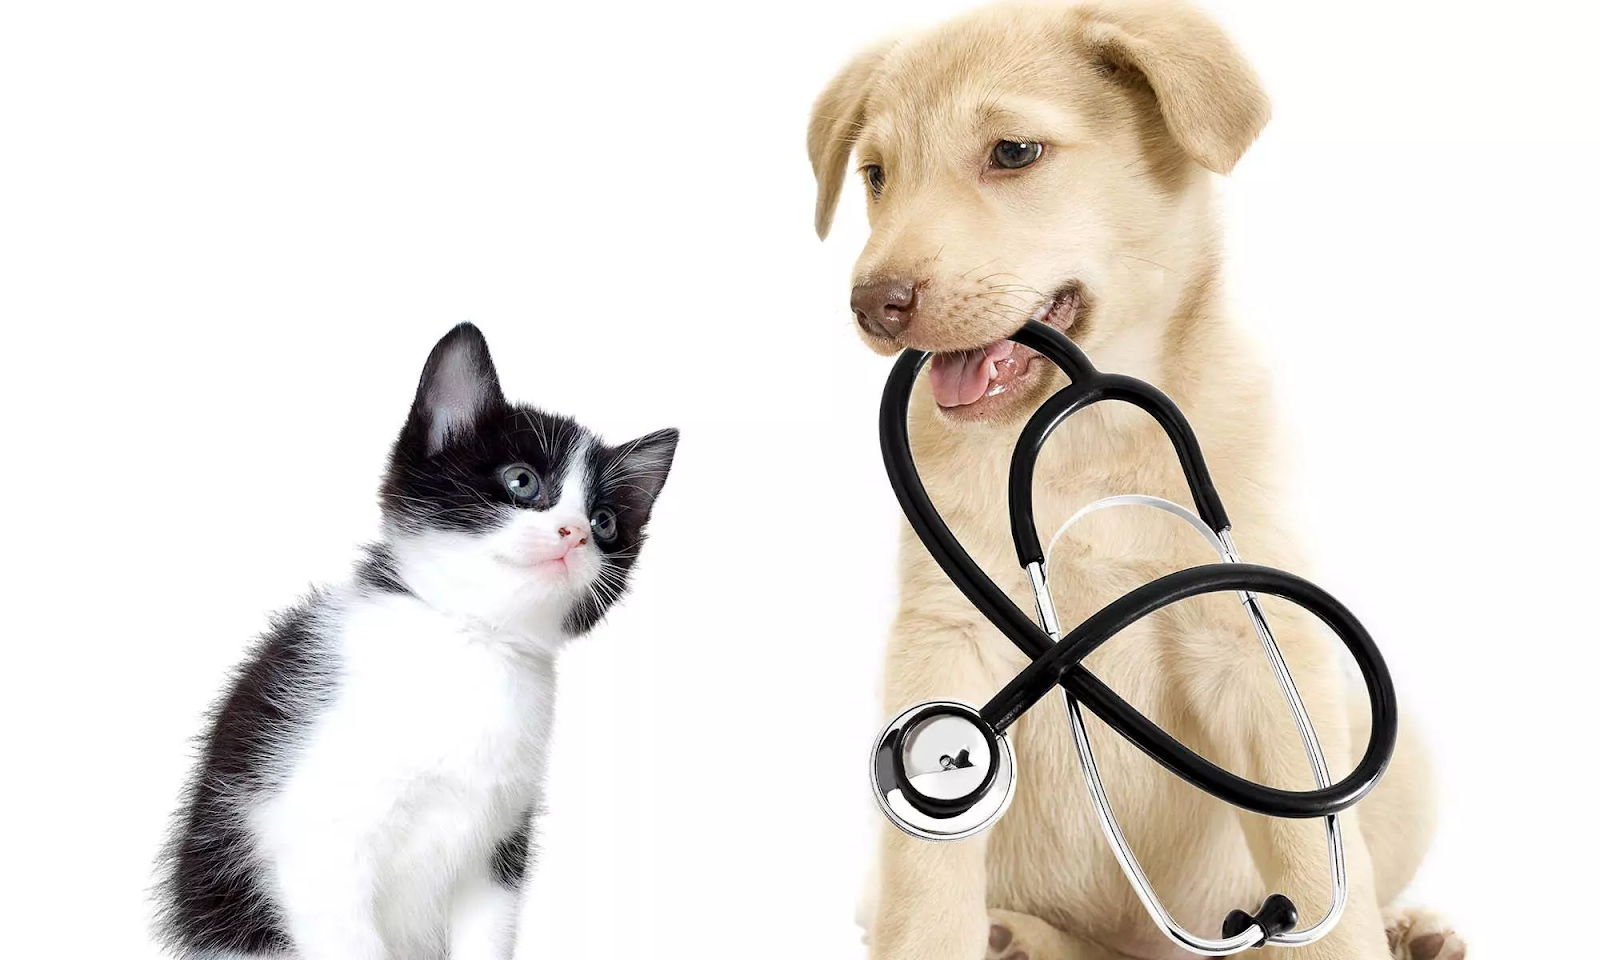 kitten & dog with stethoscope in mouth